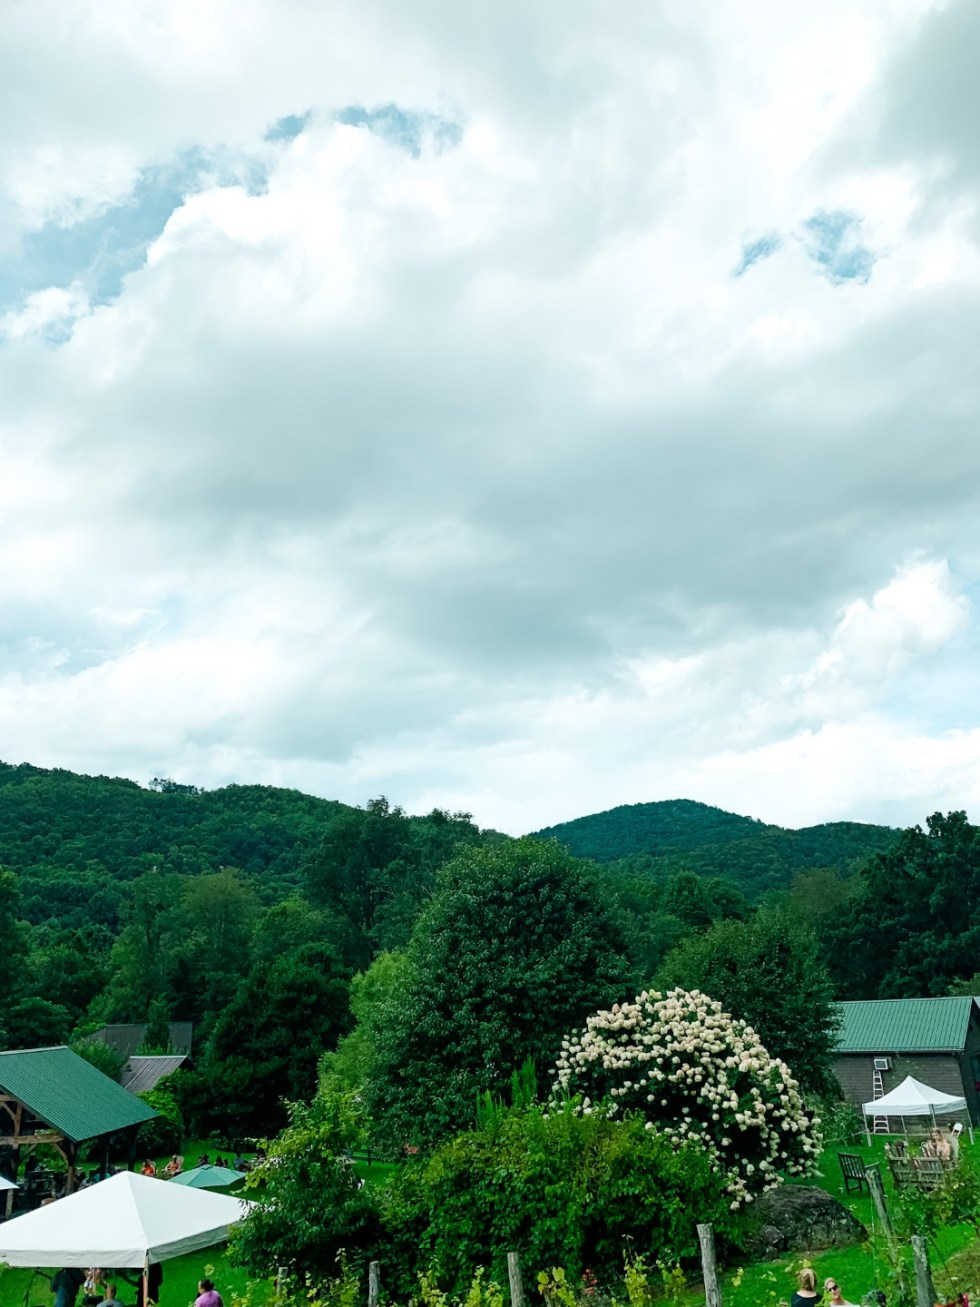 Blowing Rock Guide: Things to Do, Where to Eat and Stay - I'm Fixin' To - @mbg0112